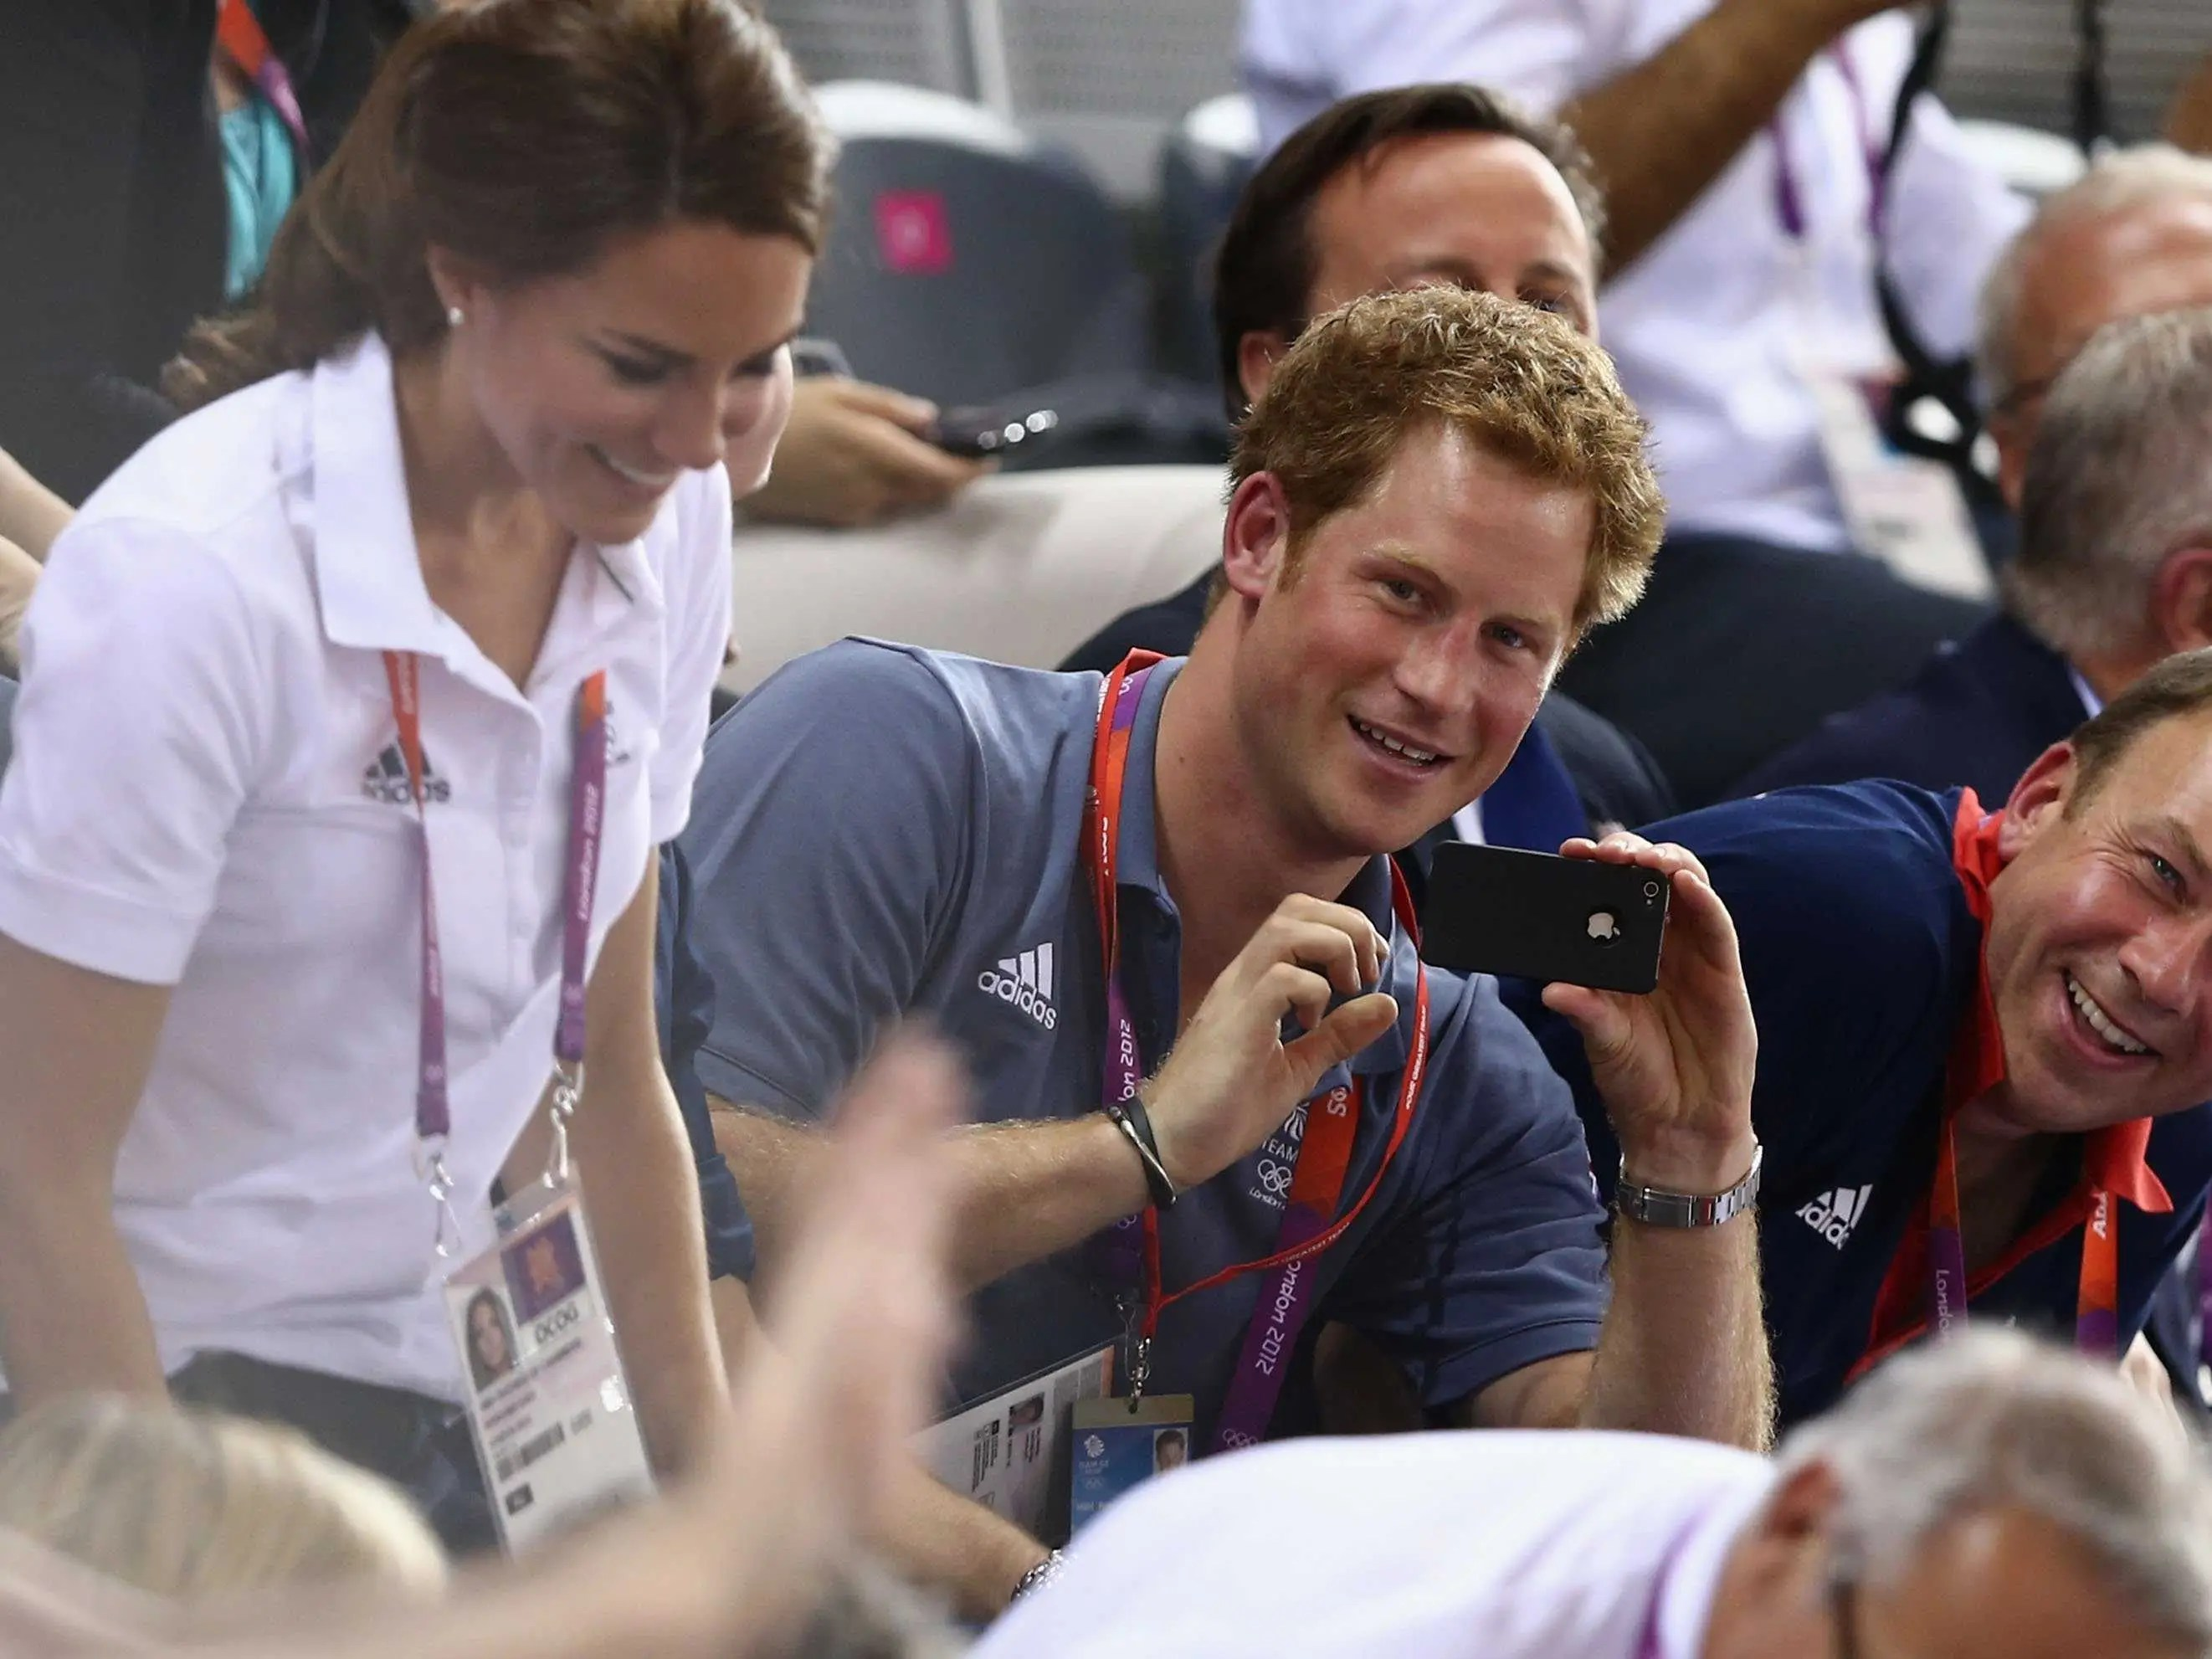 Aug. 2, 2012: Prince Harry uses his iPhone 4S while watching a track cycling event during the London Summer Olympics.